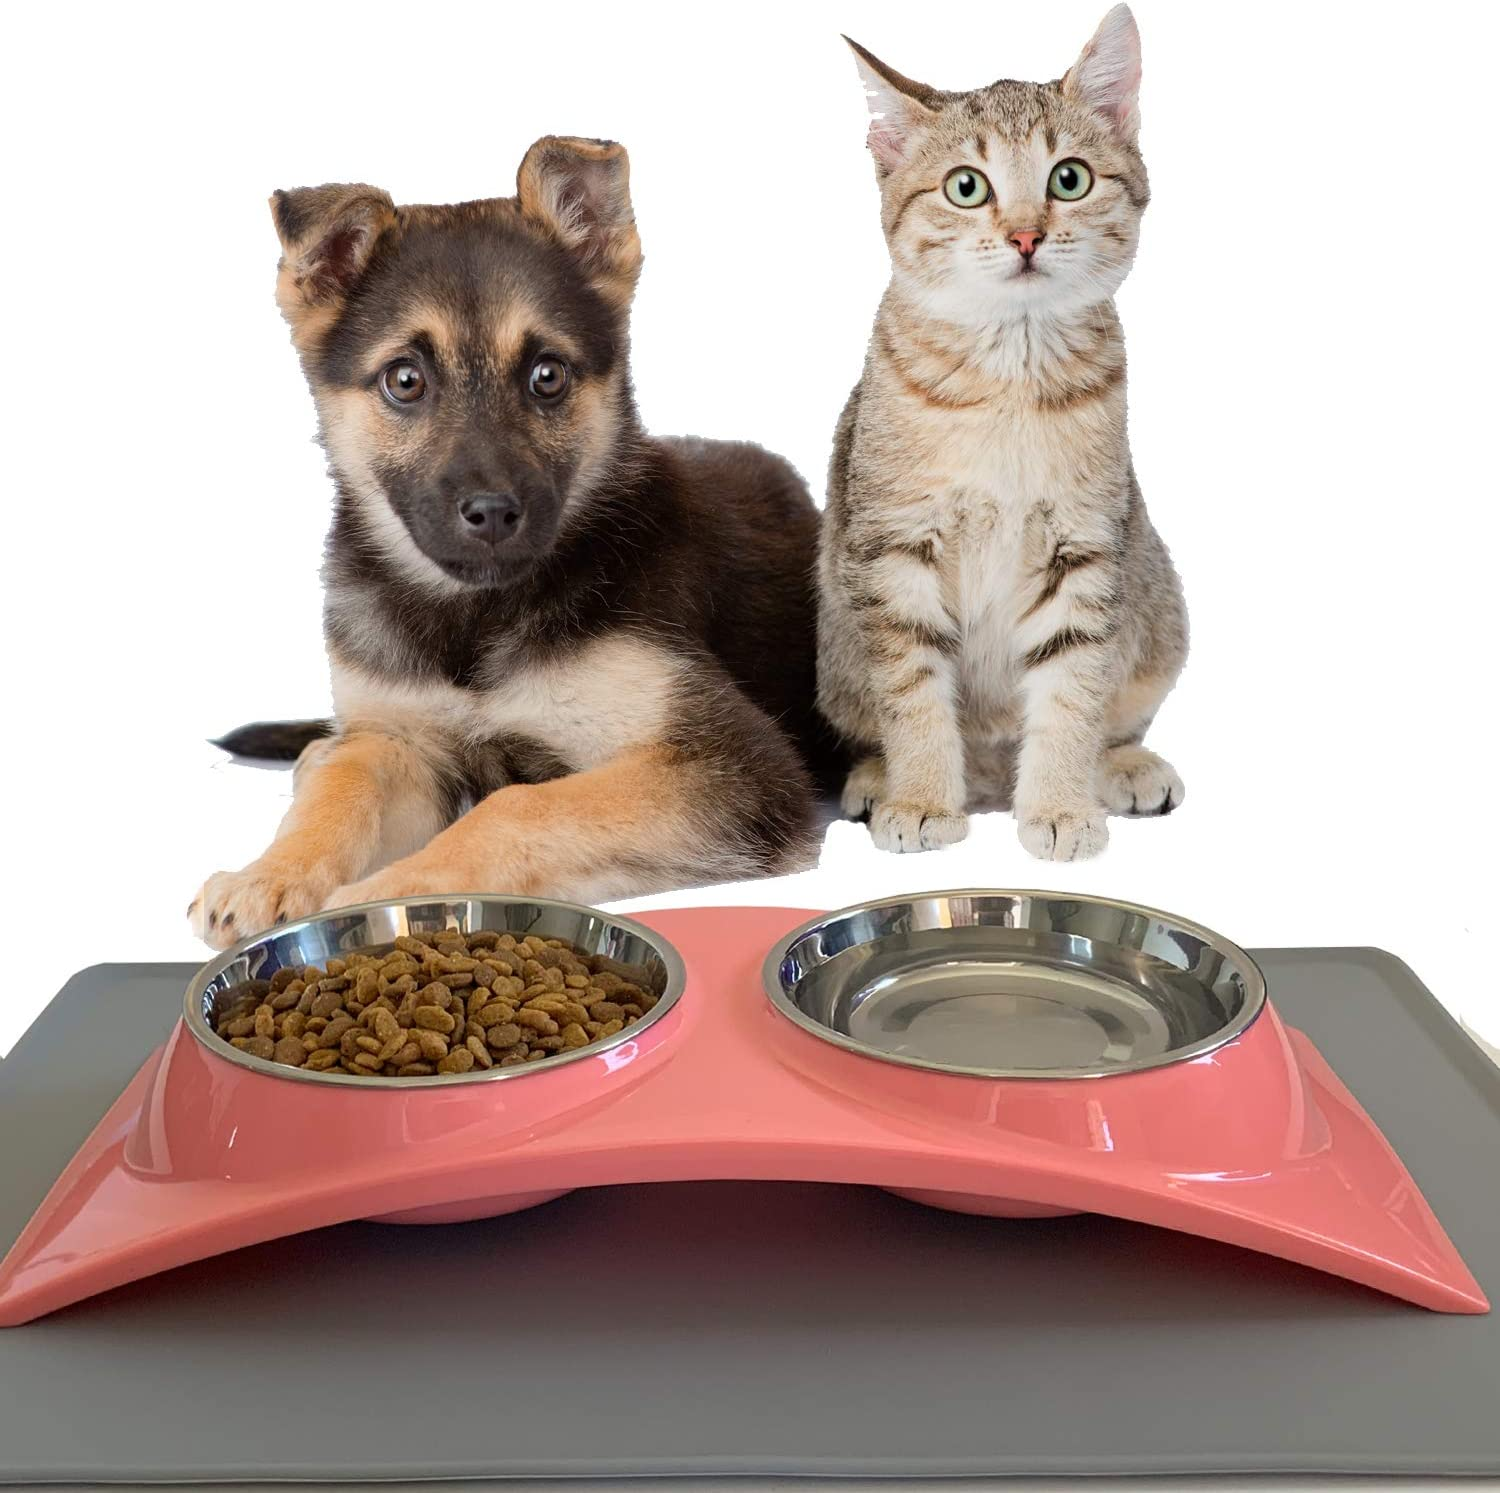 ZEXPRO Double Pet Food Bowls - Dog Bowls & Cat Bowls Made with Premium Stainless - Raised Feeding Stand with Non-Slip Silicon Mats Made with PP - Perfect for Cats and Small Dogs